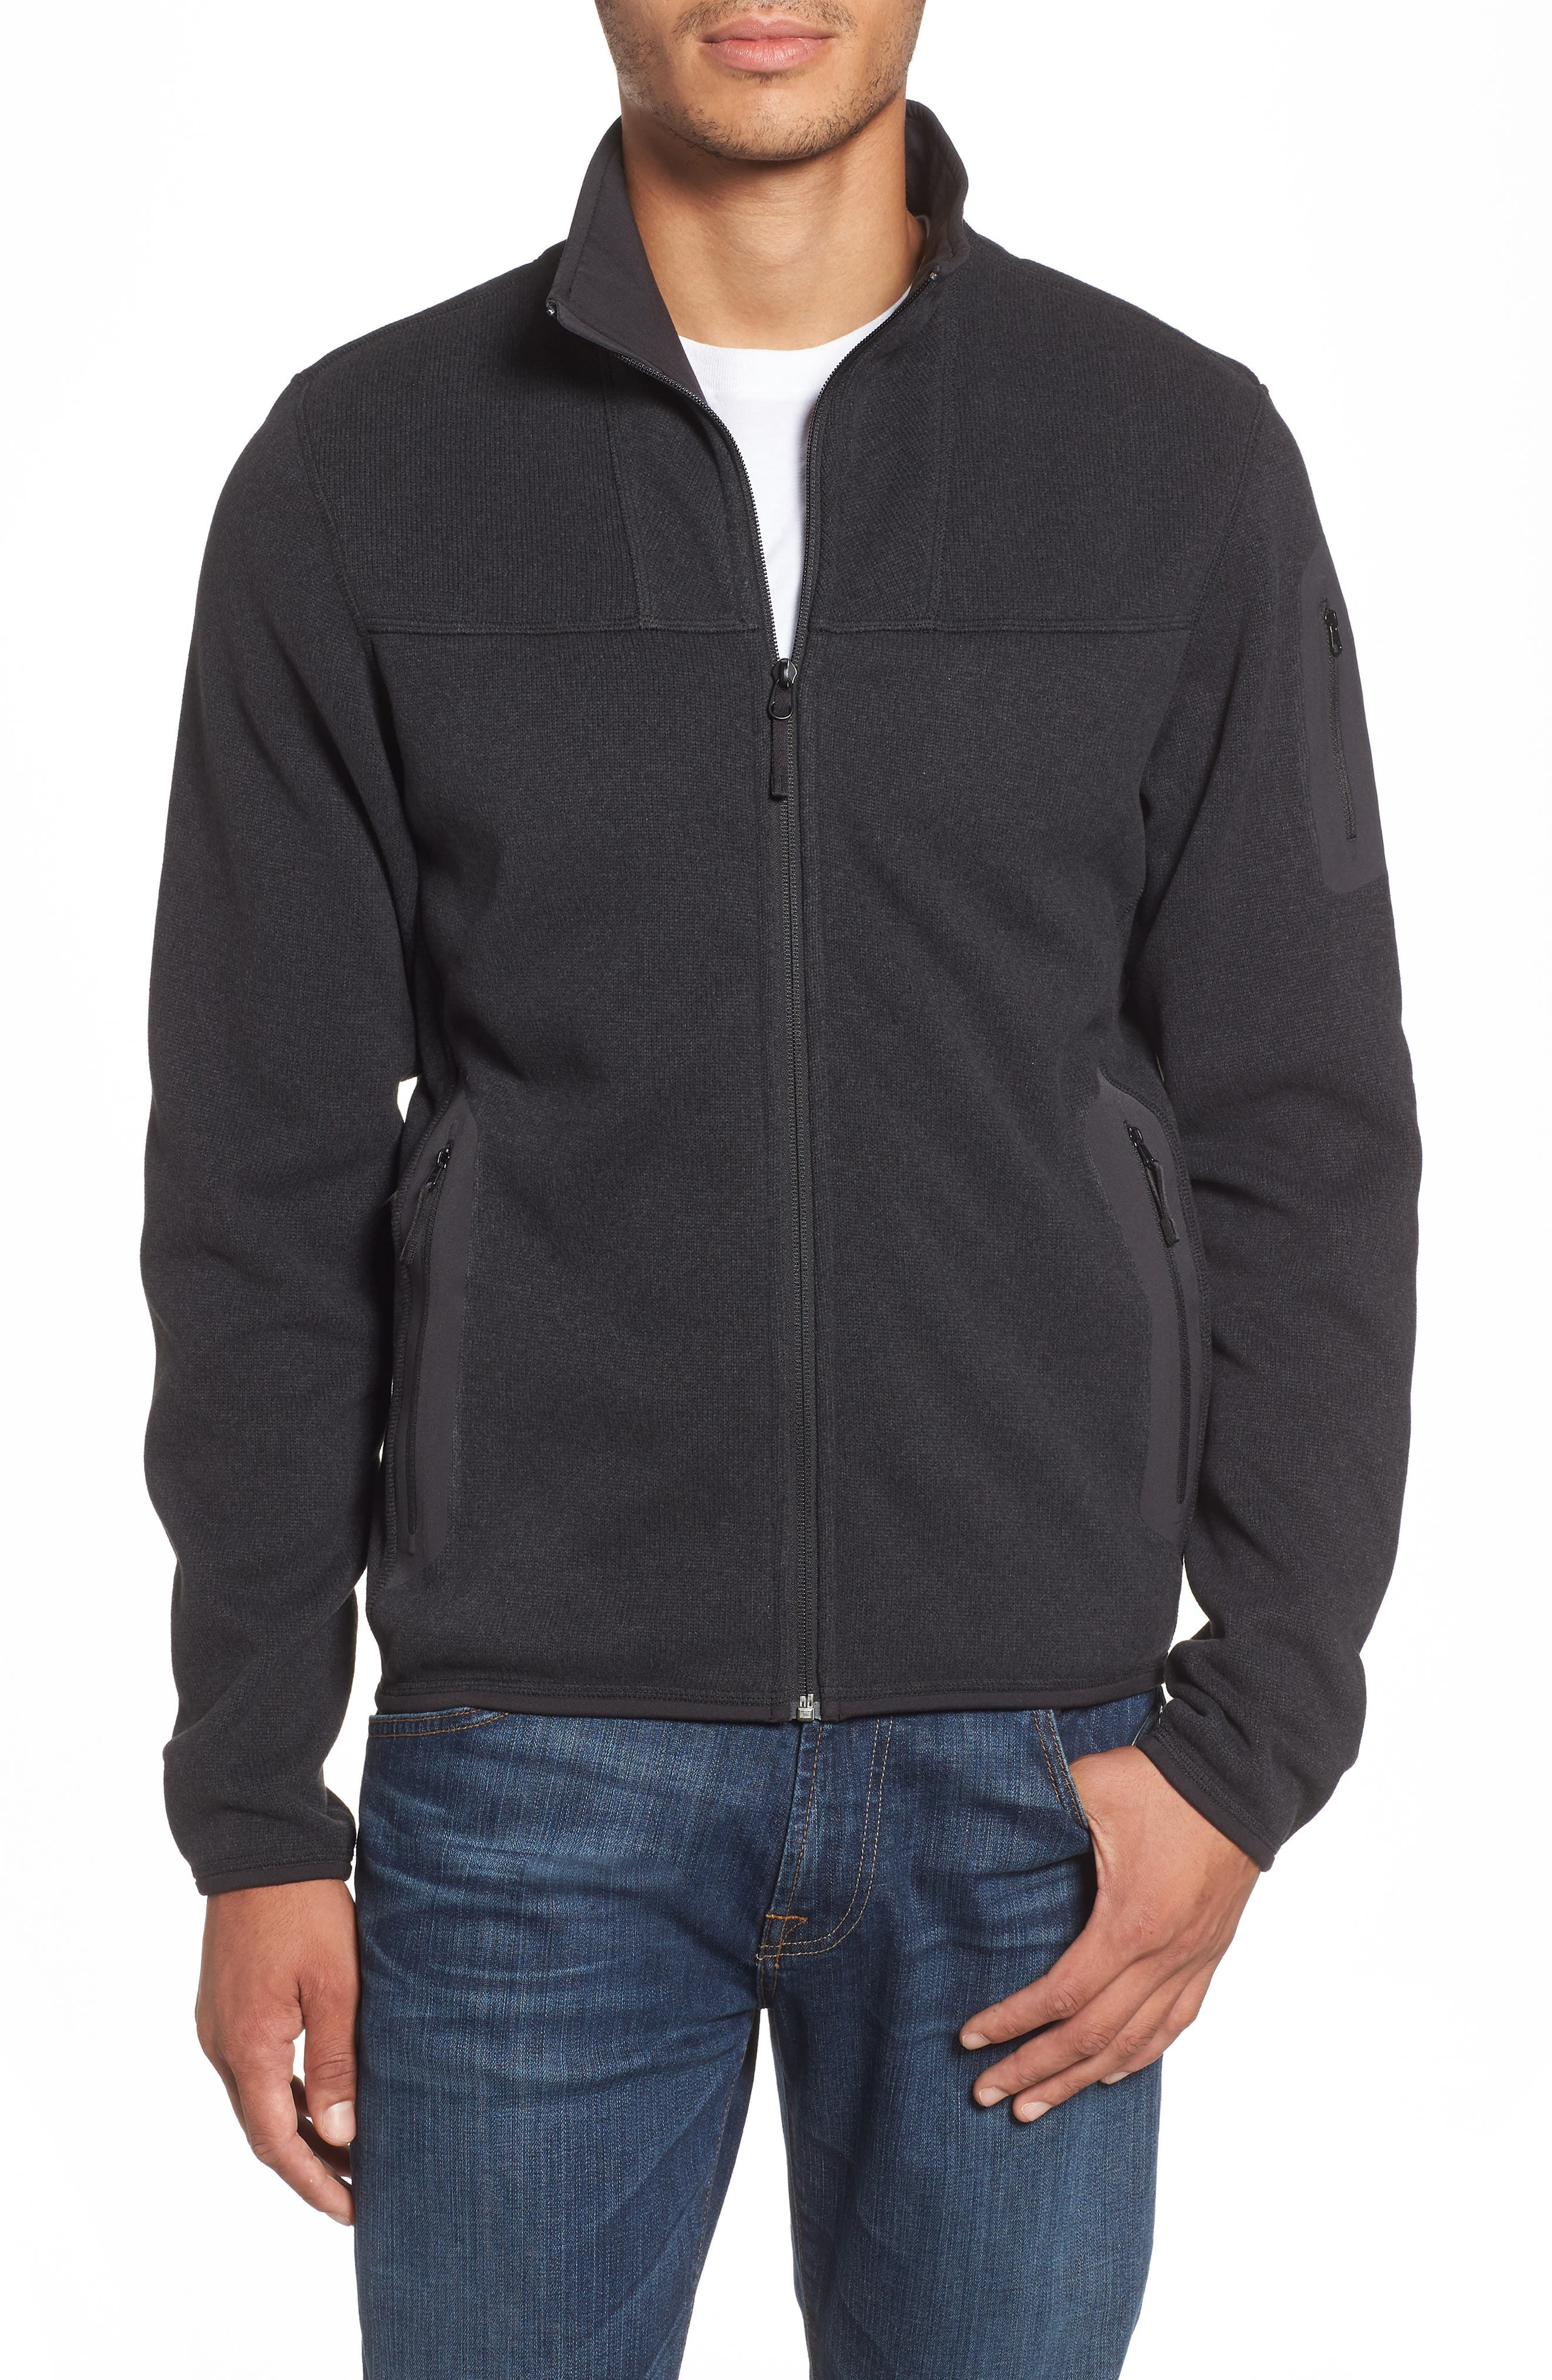 'Covert' Relaxed Fit Technical Fleece Zip Jacket,                             Main thumbnail 1, color,                             BLACK HEATHER